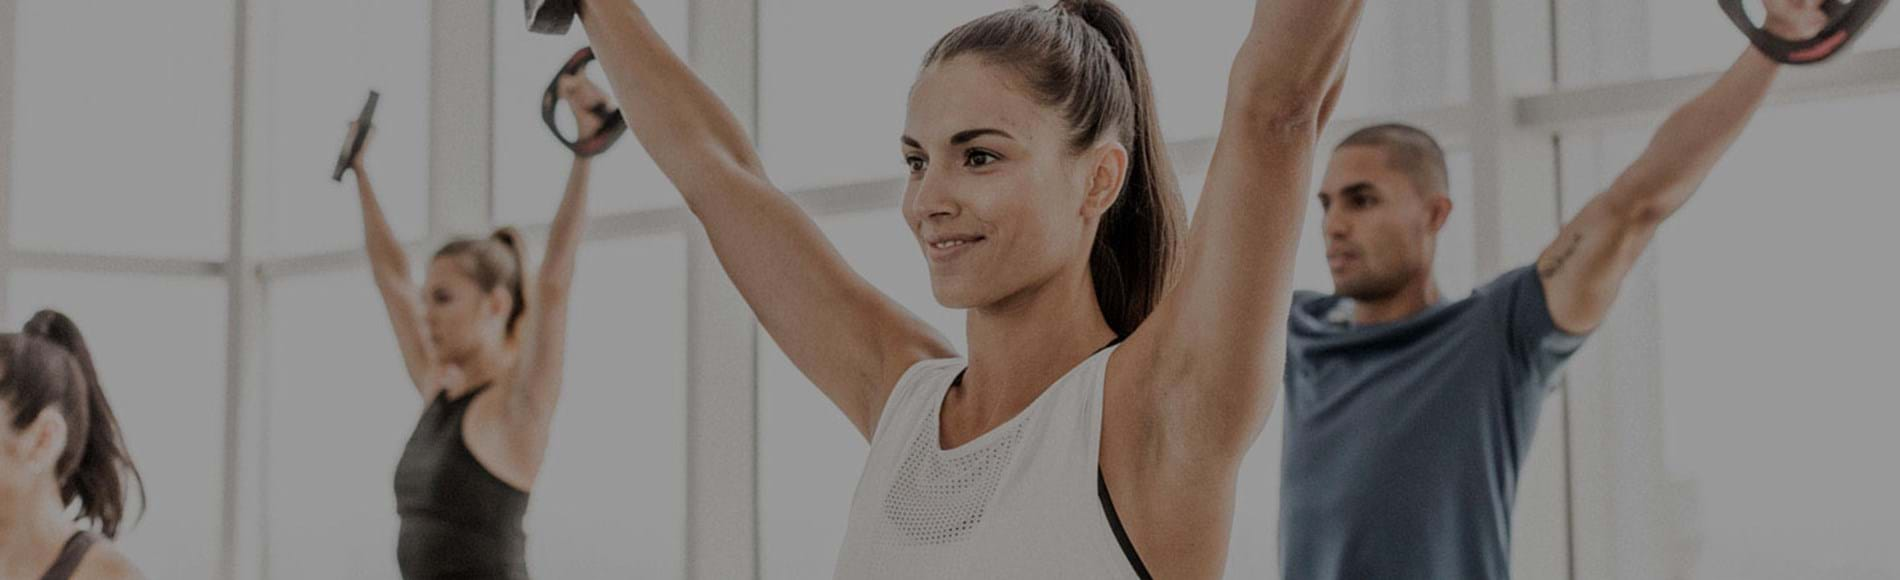 World leading fitness in your home. Try something new with LES MILLS ...